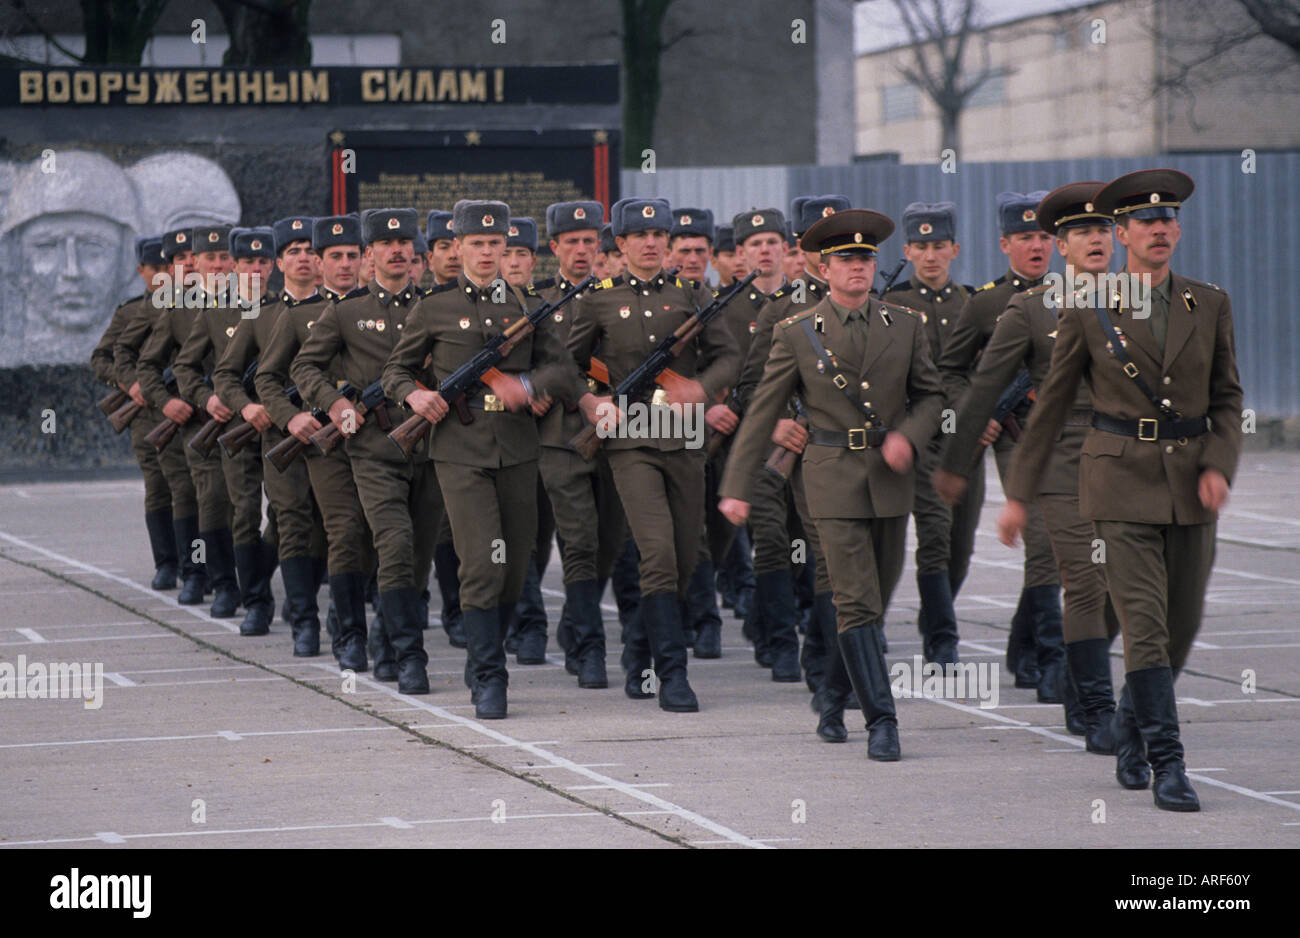 Soviet Armed Forces / Soviet Army (1946-1991) - Page 5 Russian-soldiers-march-barracks-frankfurt-oder-eastern-germany-ARF60Y